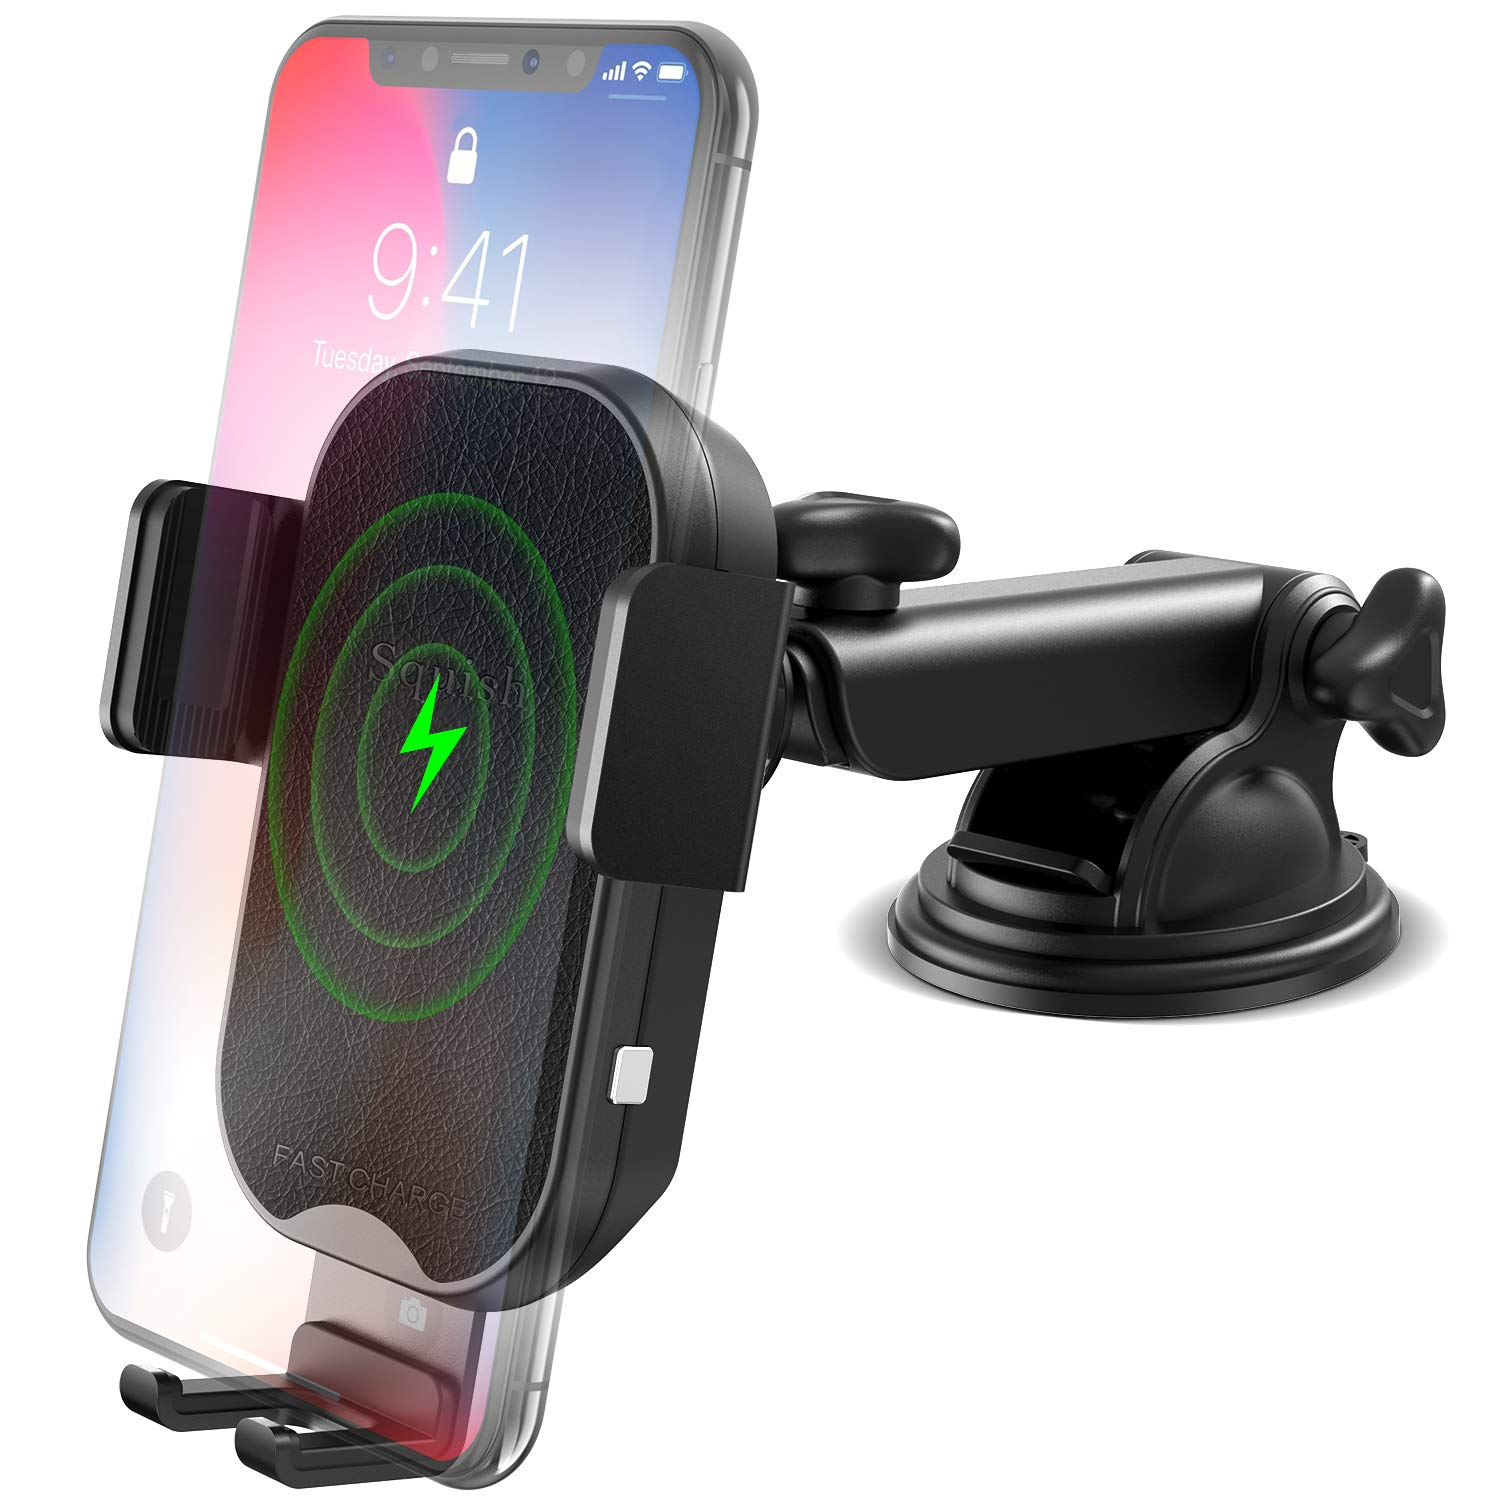 Wireless Car Charger Mount, Squish 10W 7.5W Qi Fast Wireless Charger Car Phone Holder, Auto Clamping Car Mount for Dashboard Windshield Compatible with iPhone Xs Max/XS/XR/X/8/8+ Samsung S9/S9+/S8/S8+